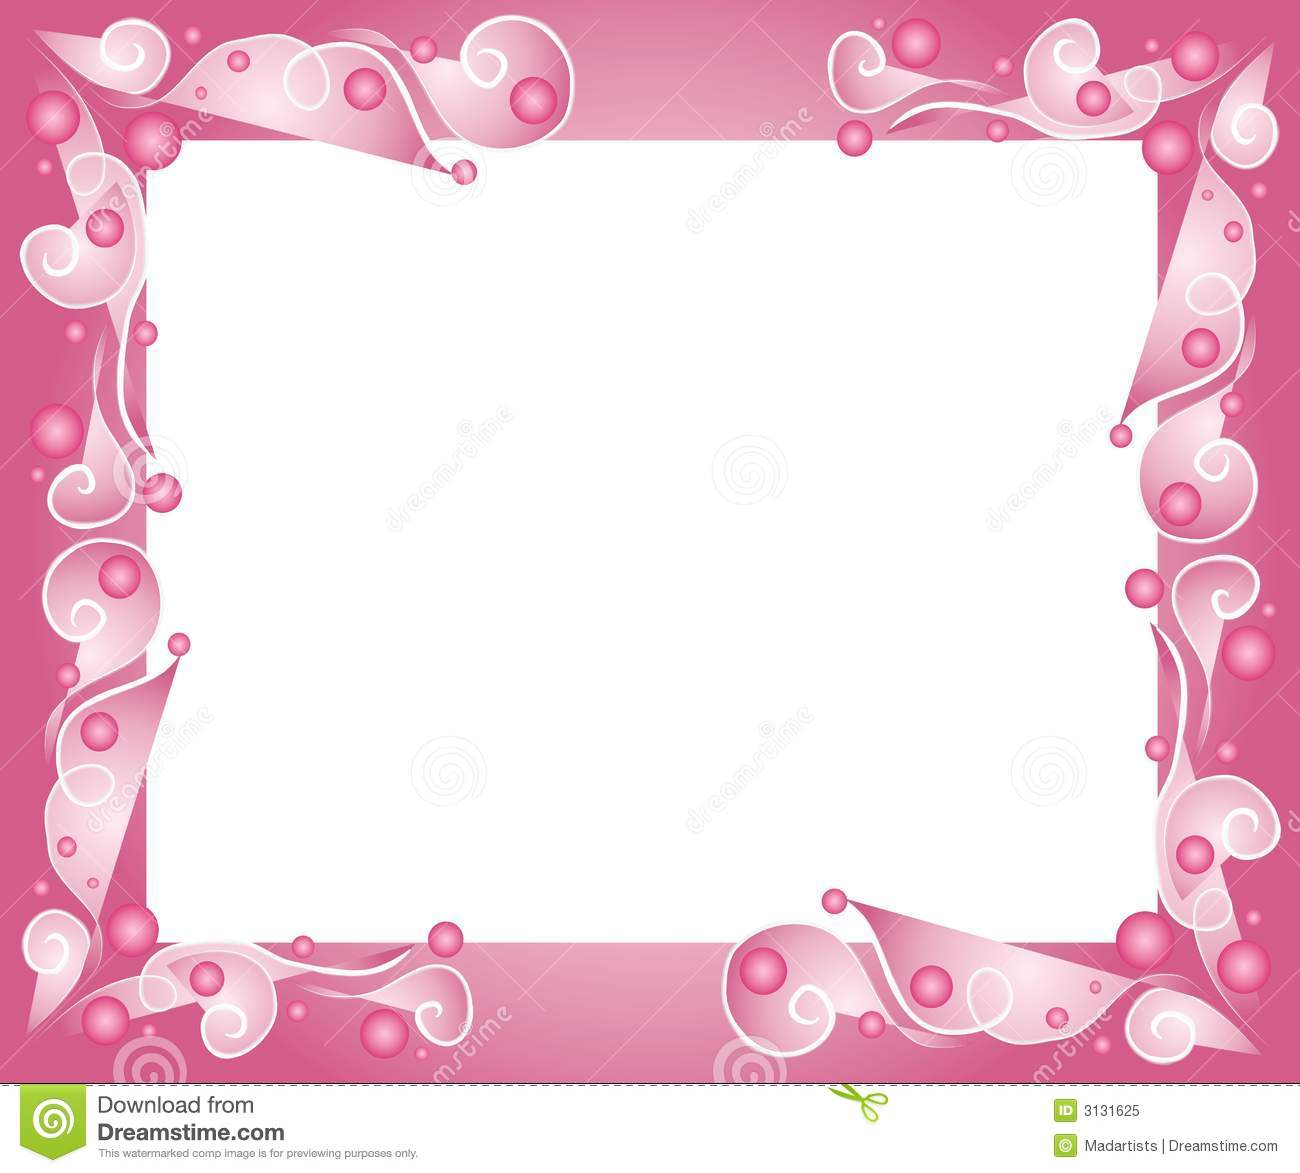 Decorative Pink Frame Border Stock Illustration - Illustration of ...